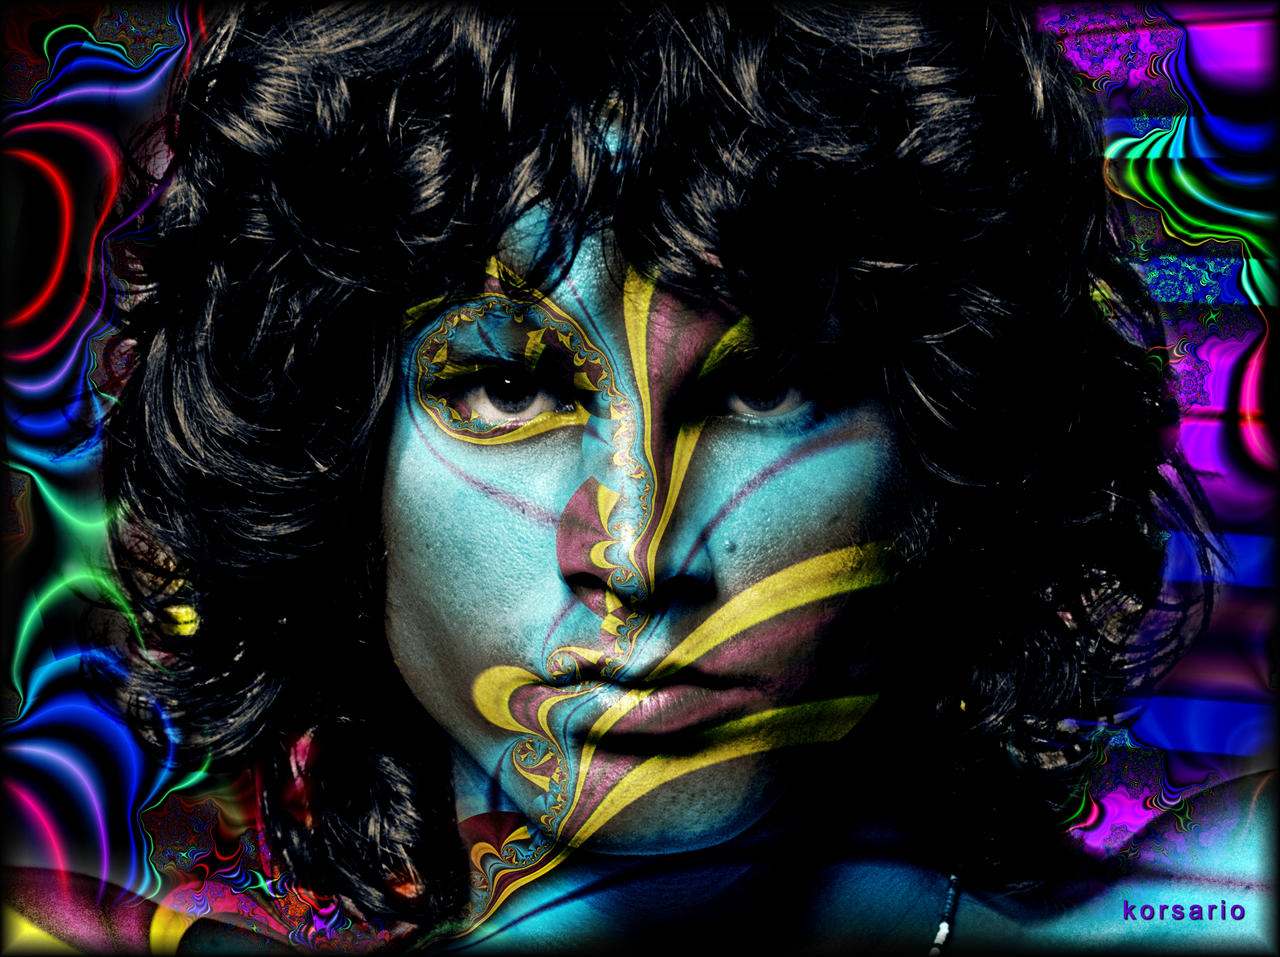 the_spirit_of_jim_morrison_by_ivankorsario-d2yydgp.jpg (1280×957)